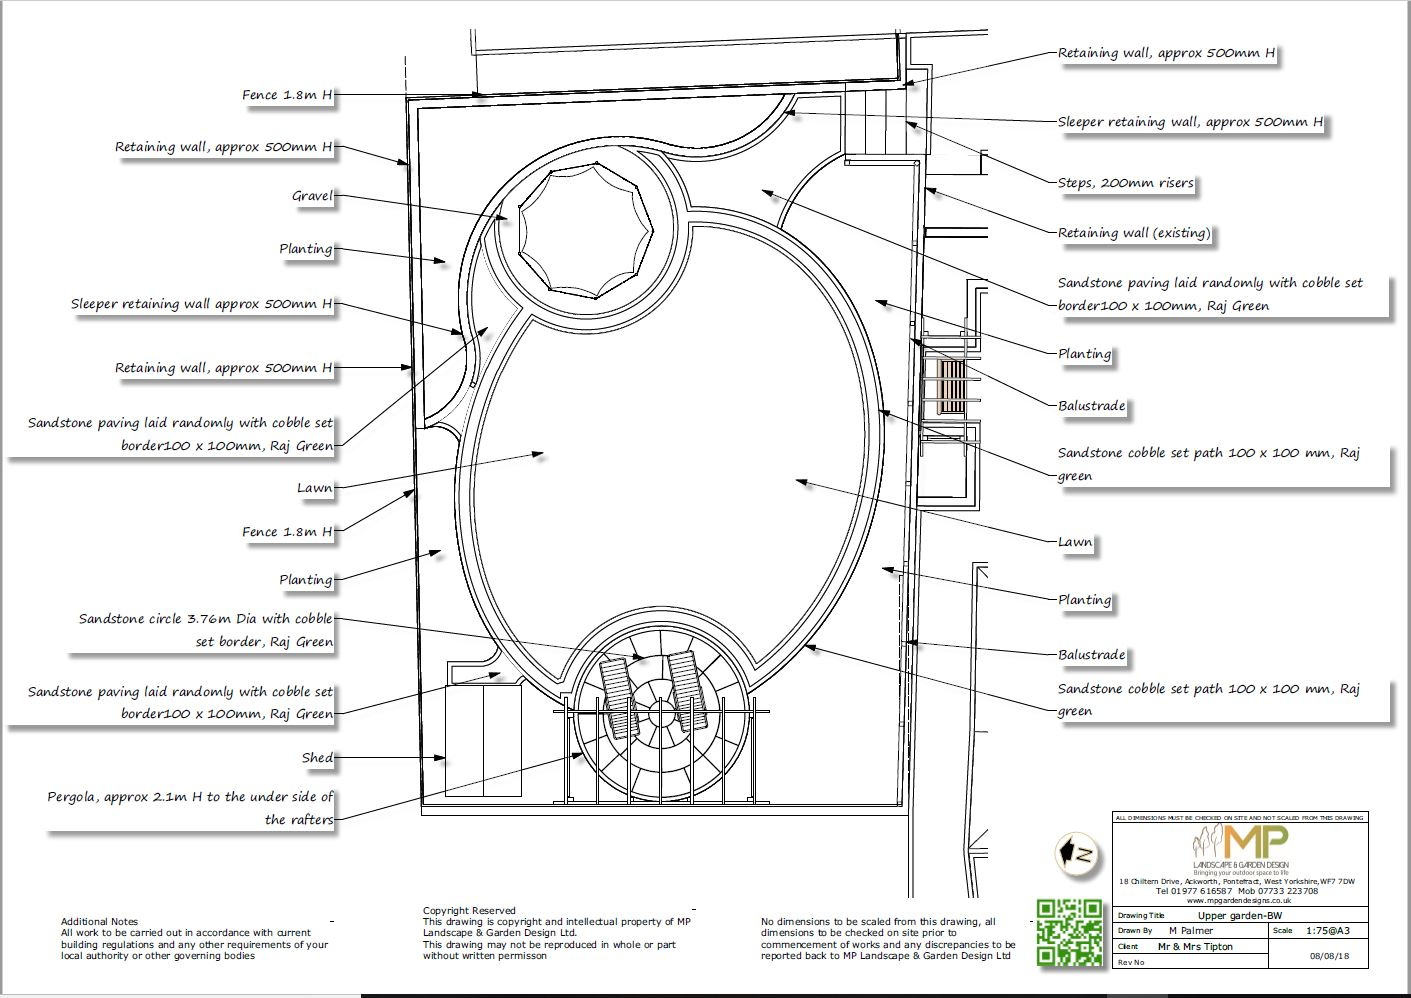 Garden layout plans black and white for a property in Castleford.